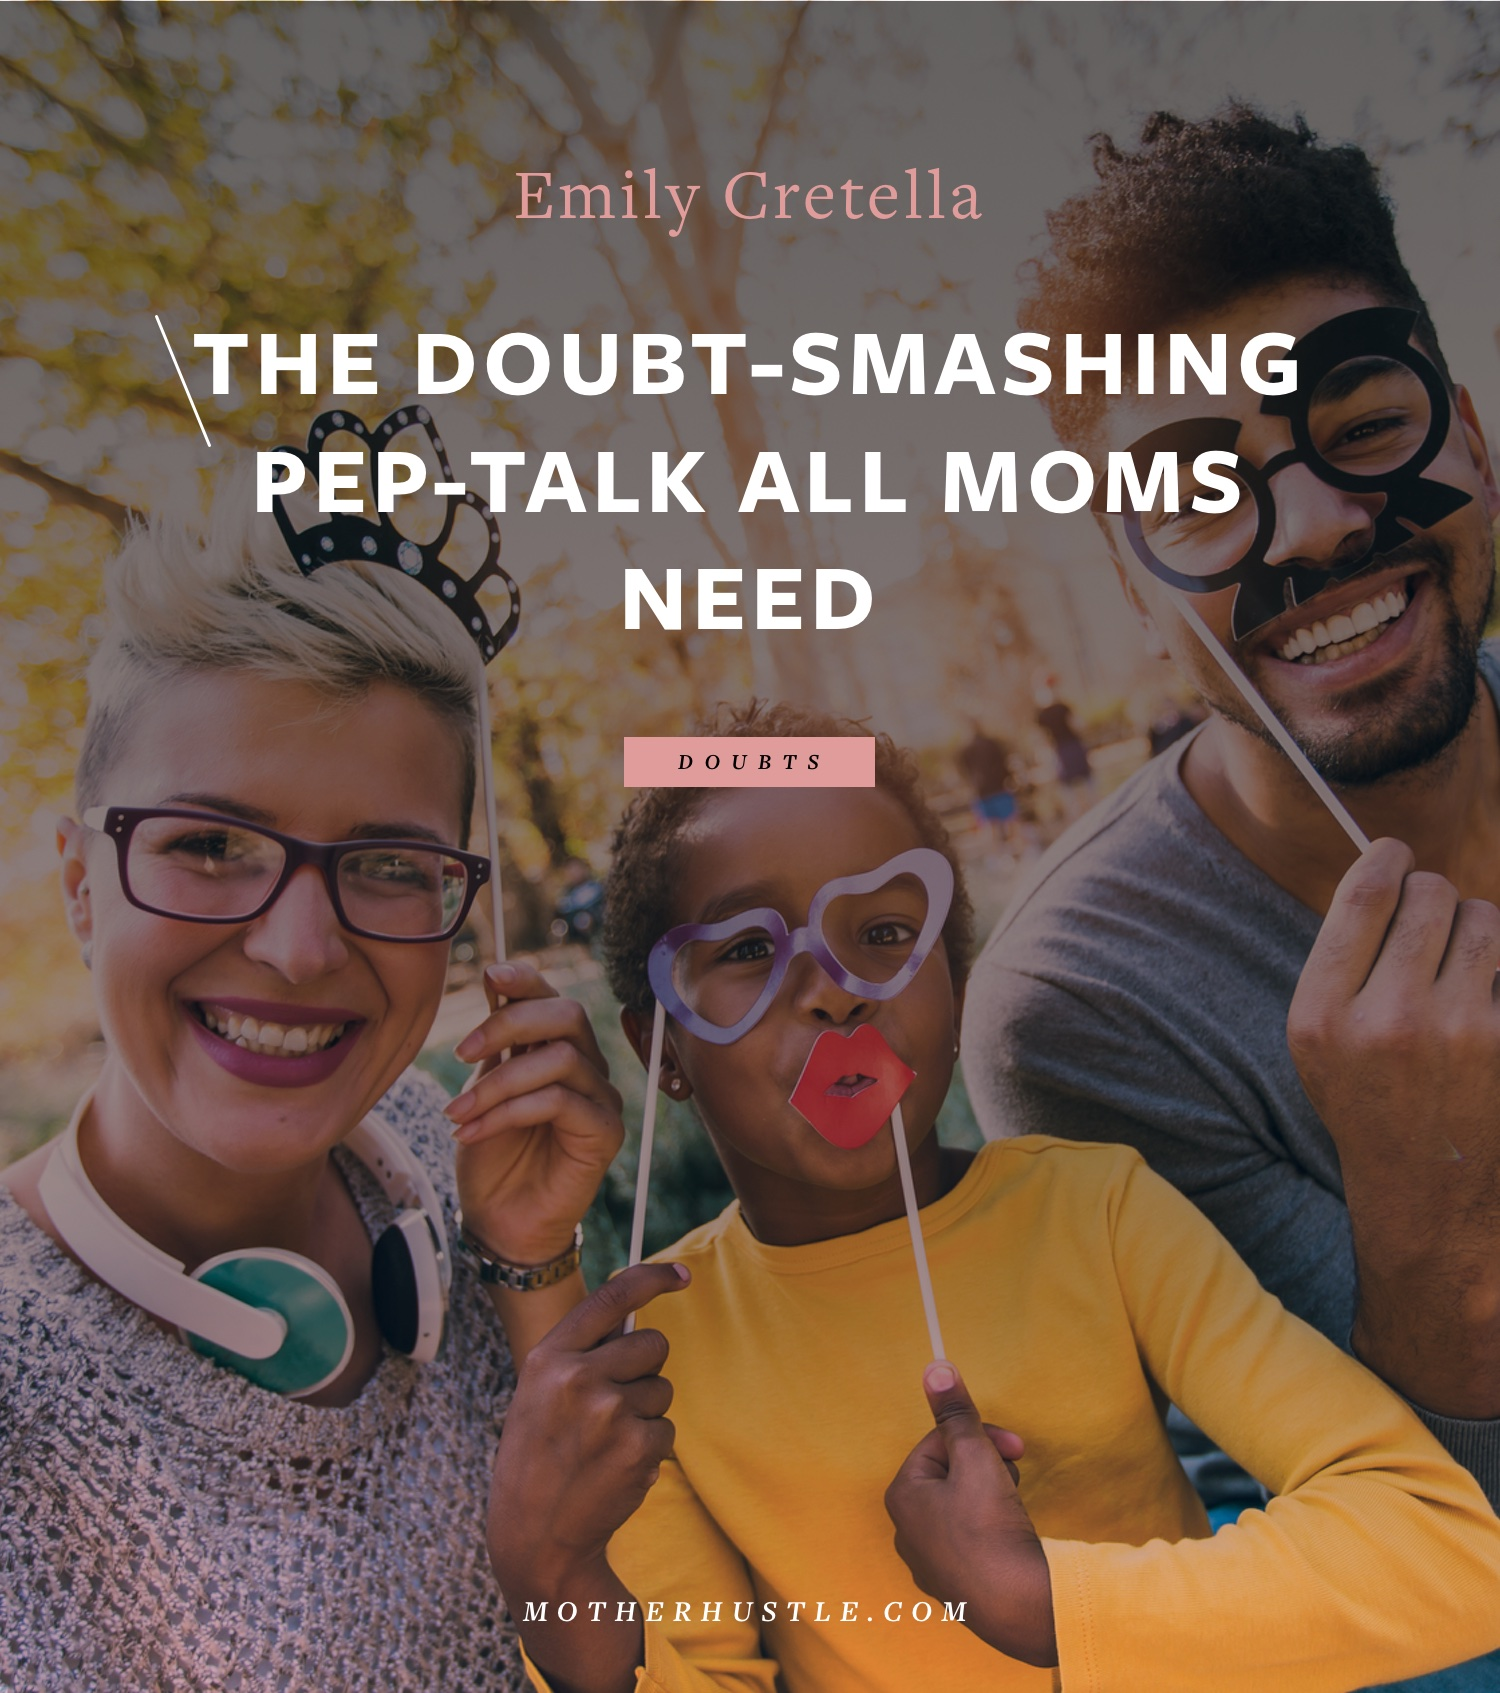 The Doubt-Smashing Pep-Talk All Moms Need - BY Emily Cretella for MotherHustle